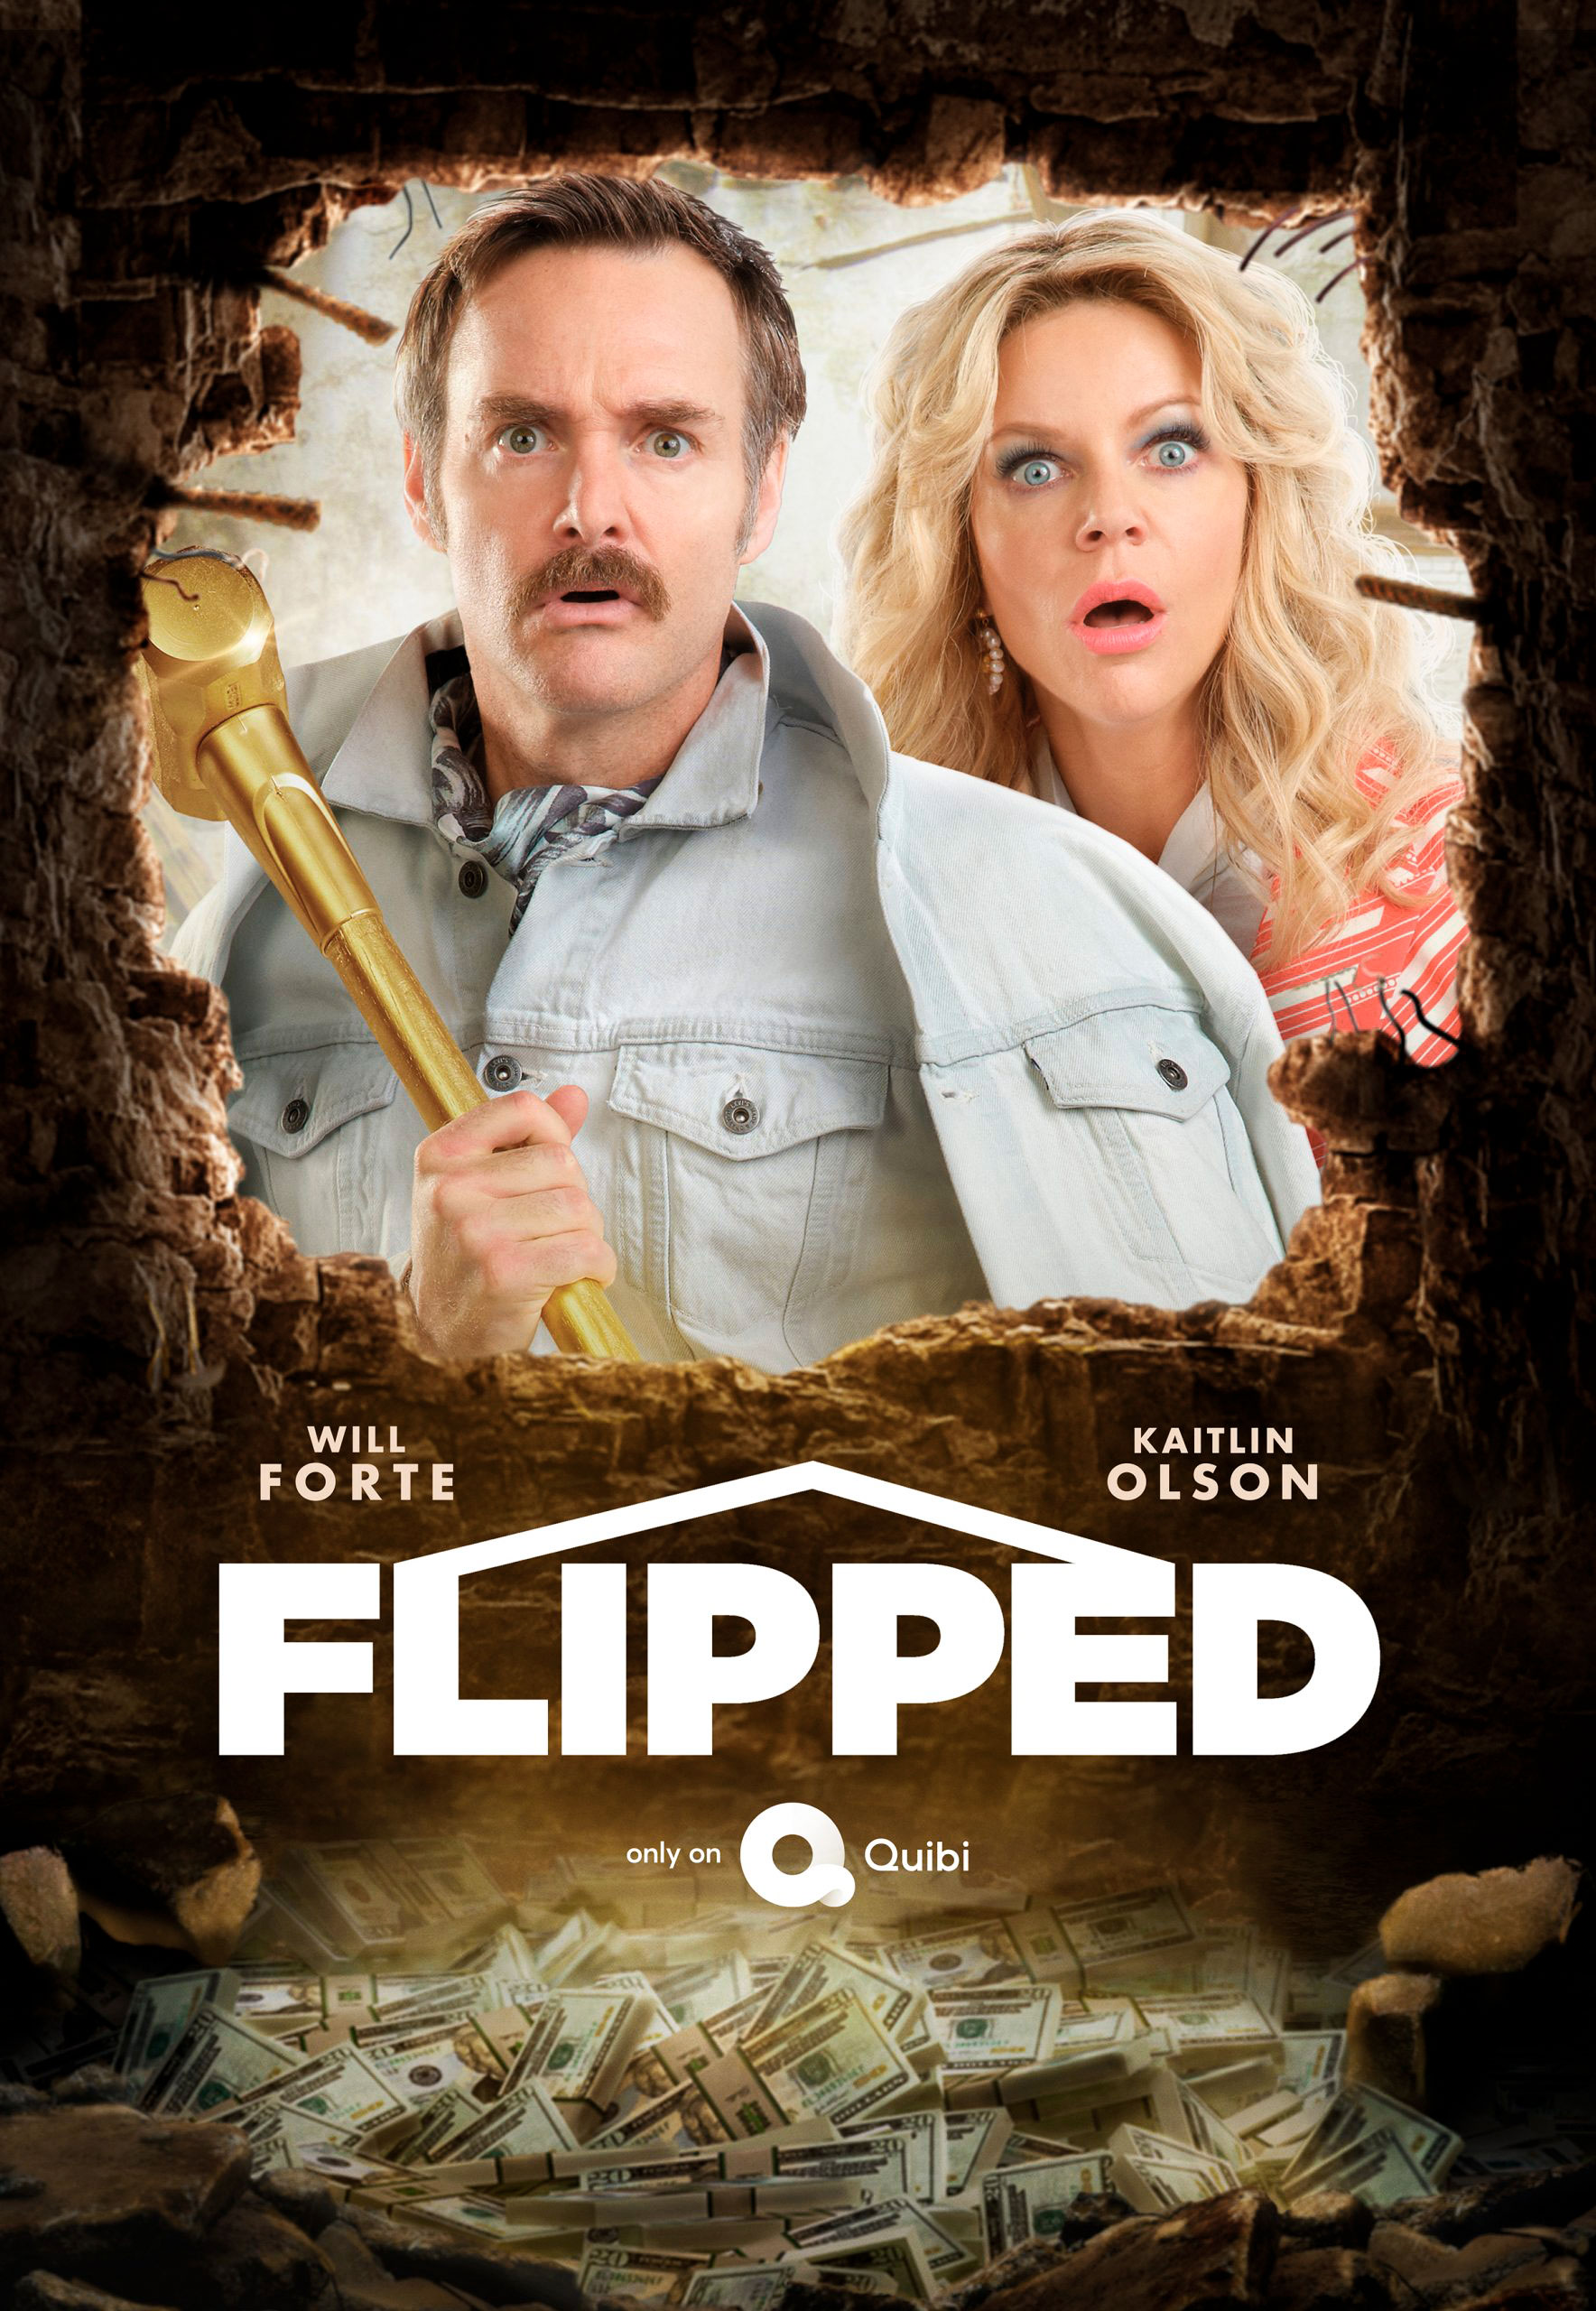 2flipped-poster-will-forte-kaitlin-olson-scaled